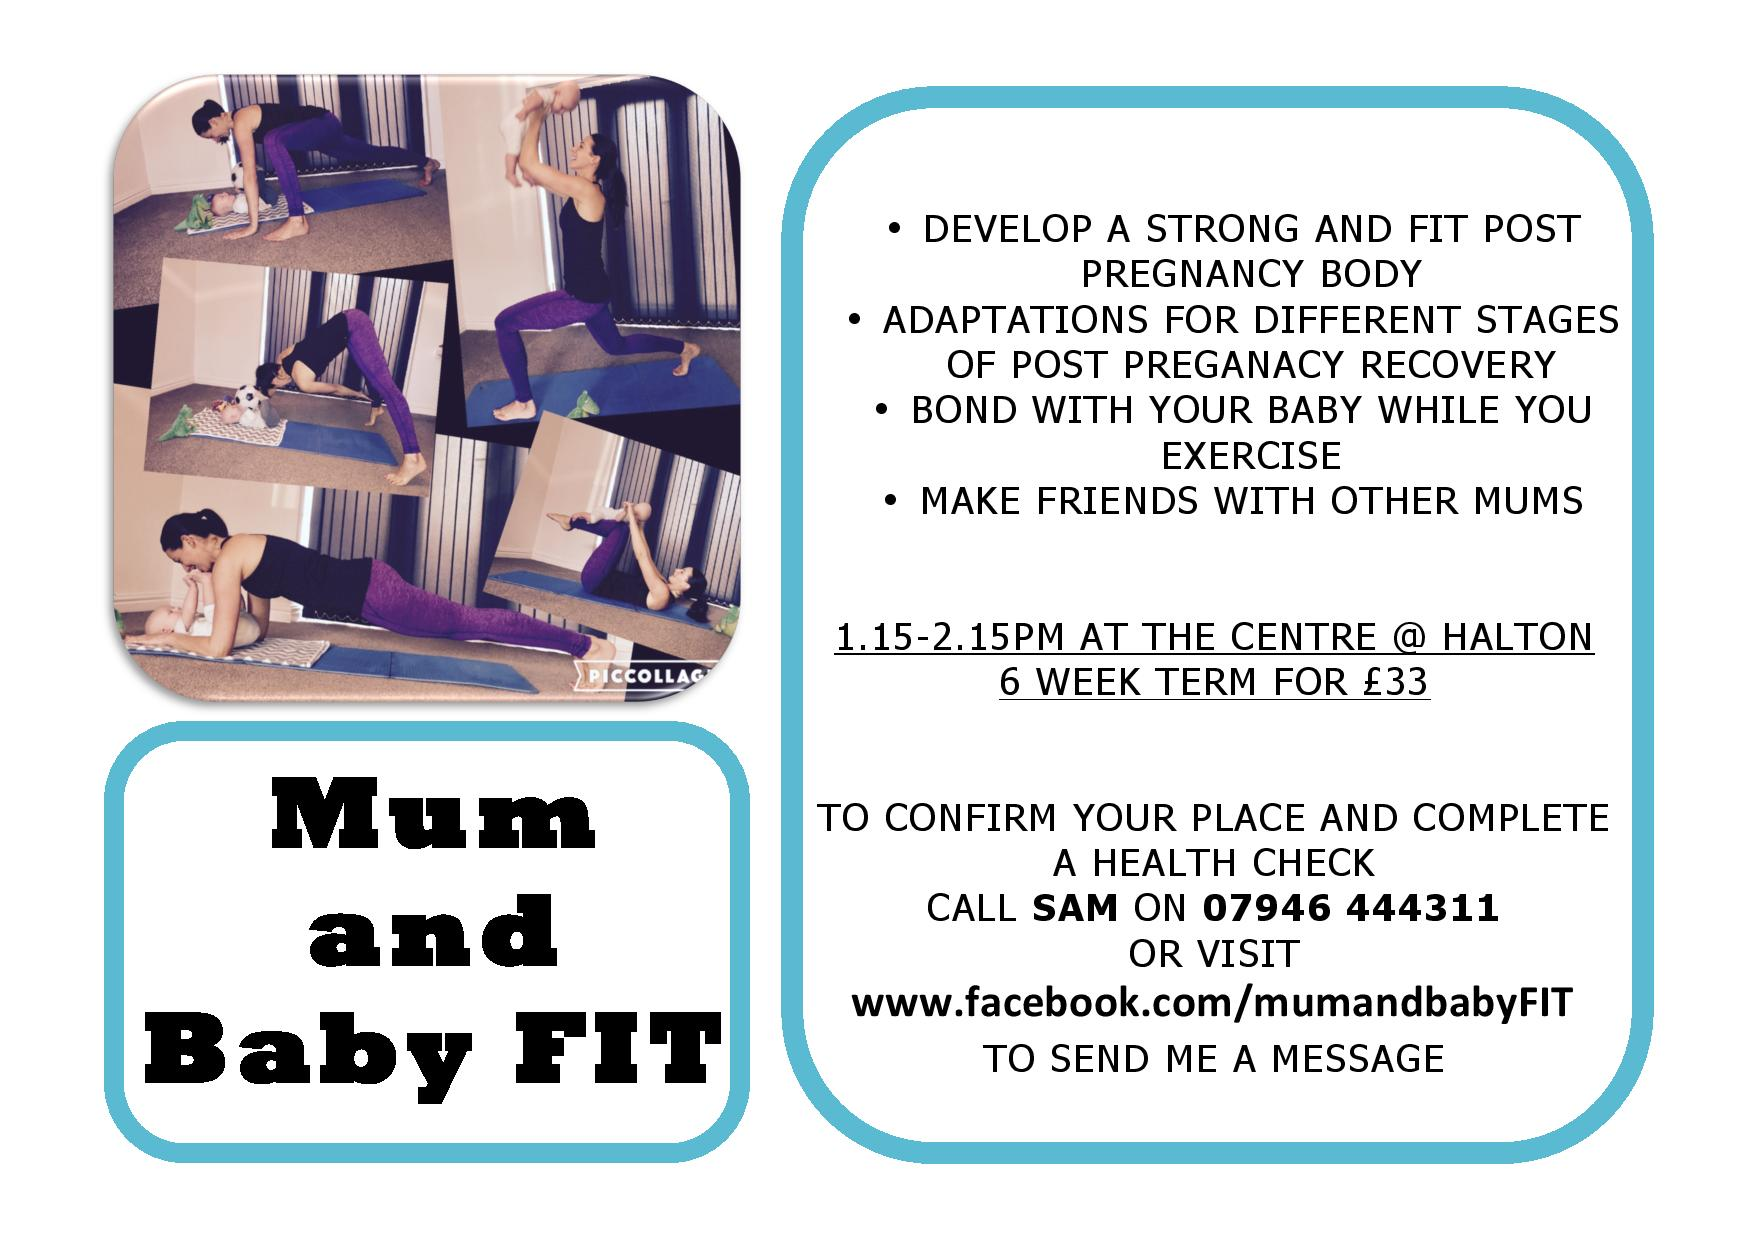 mum-and-baby-fit-nov-2016-revised-page-001-2